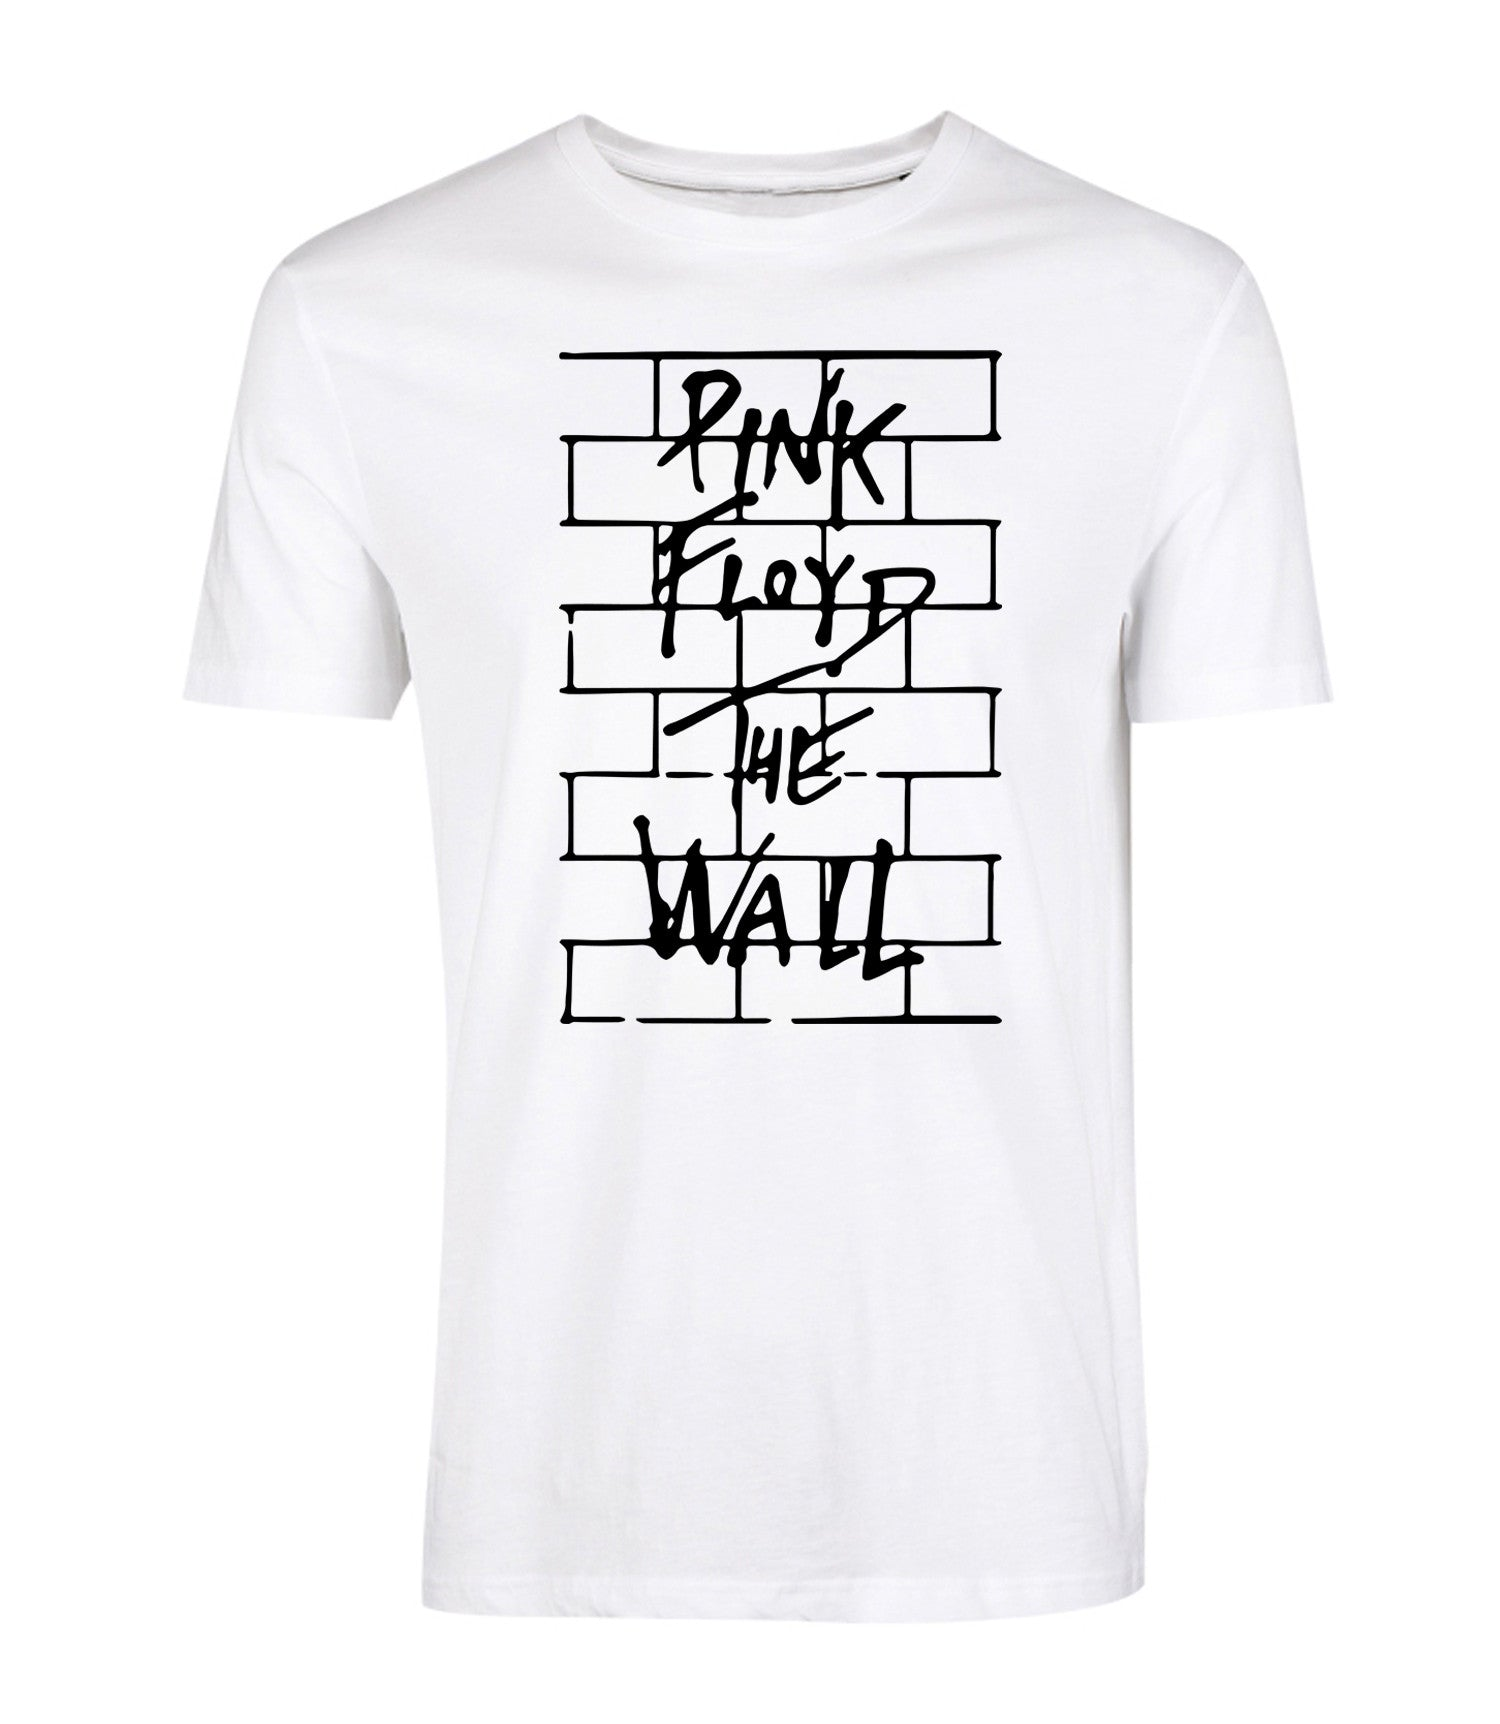 Pink Floyd The Wall T Shirt